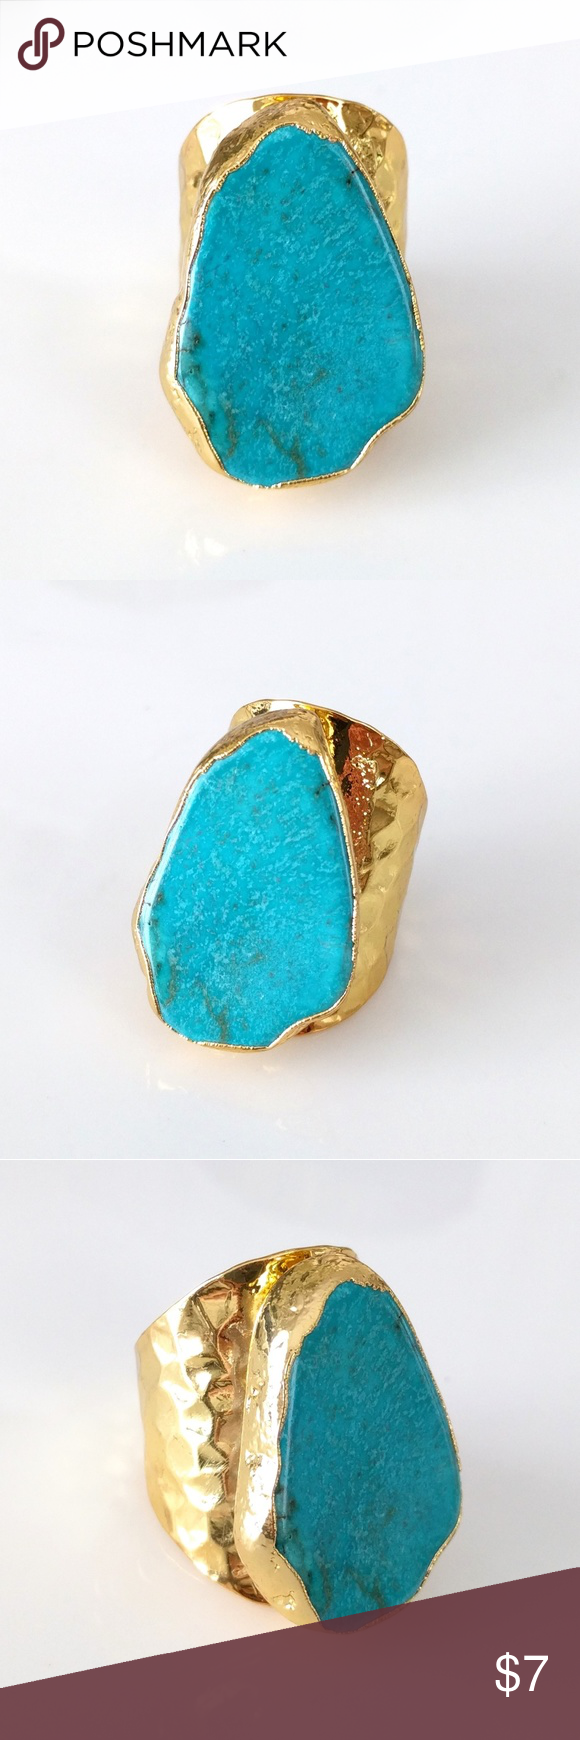 GoldPlated Turquoise Howlite Statement Ring Closet Closing